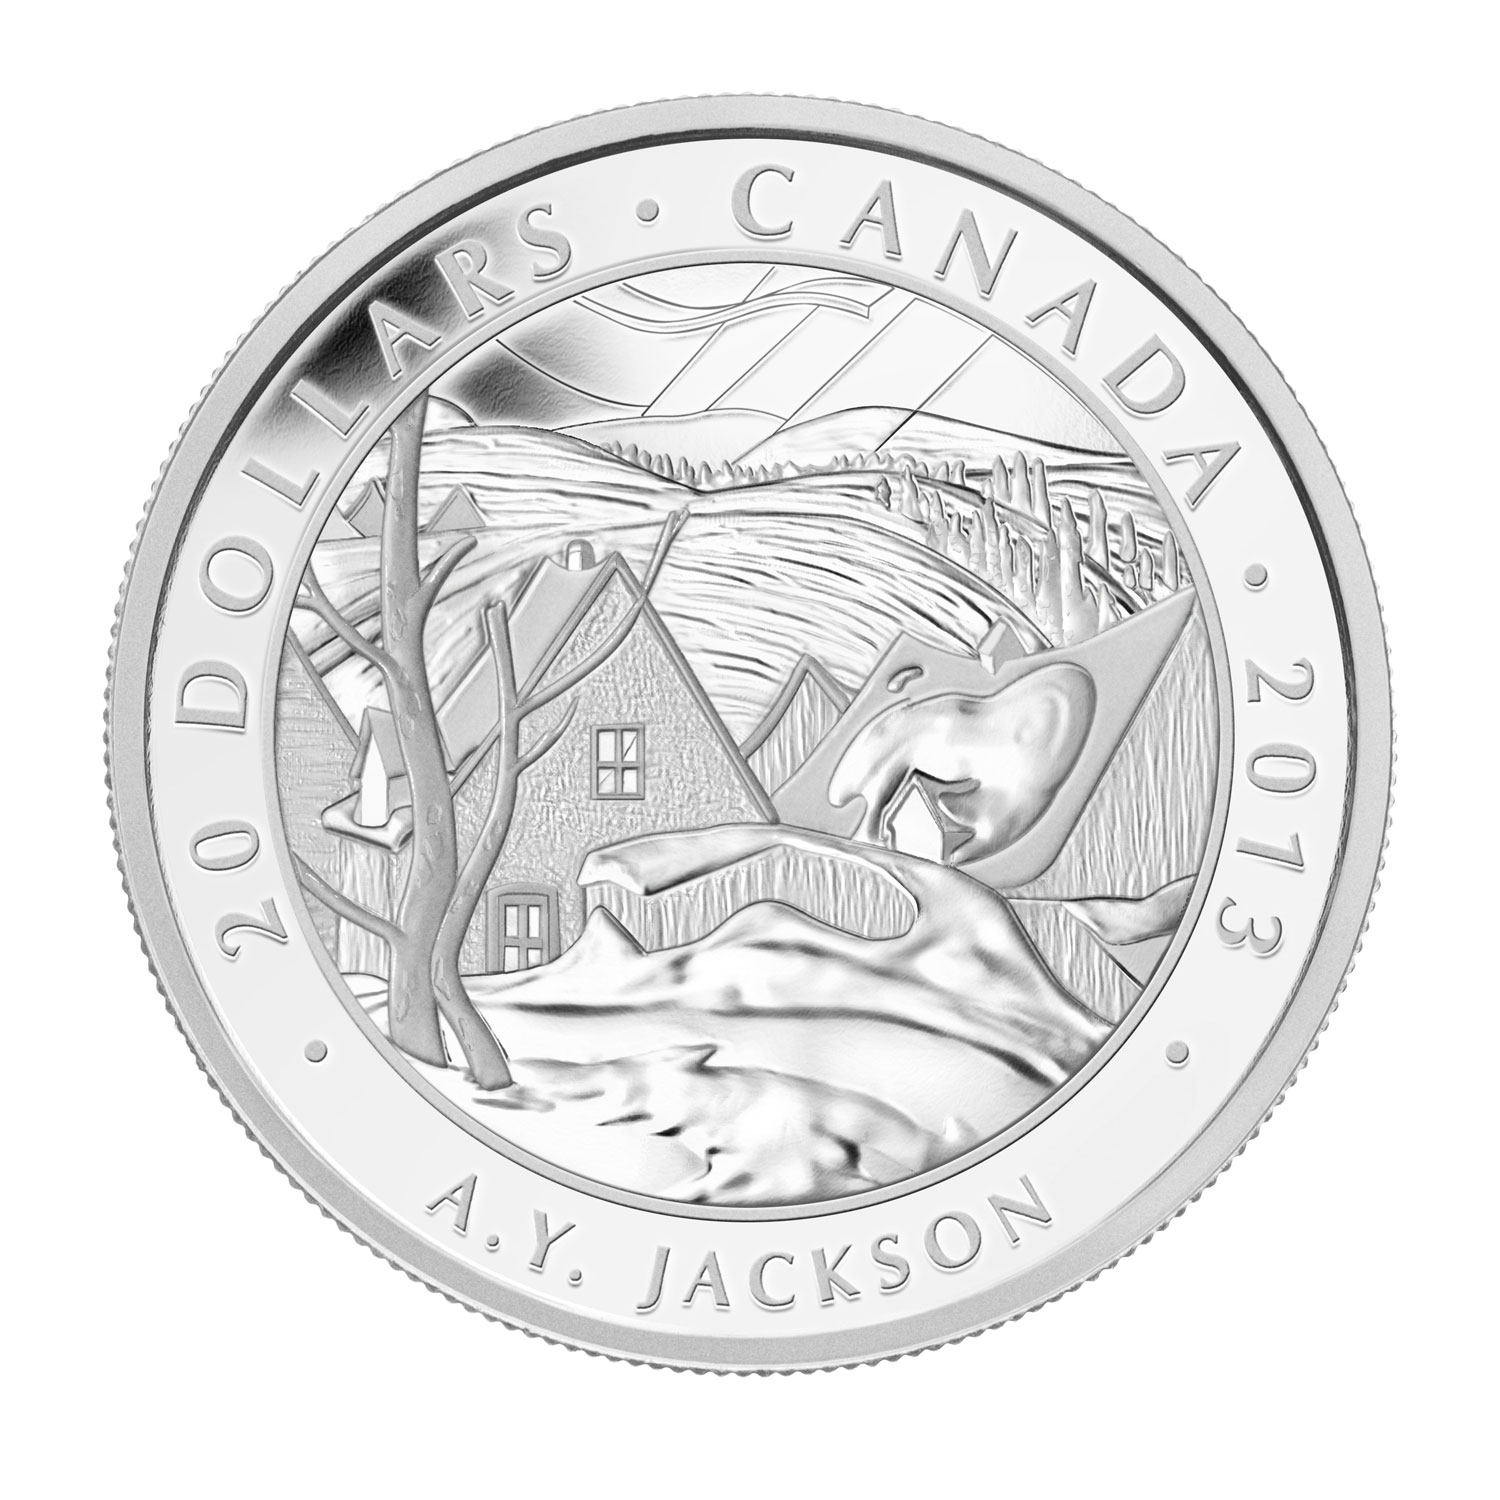 2013 Canada 1 oz Silver $20 Group of Seven (A.Y. Jackson)